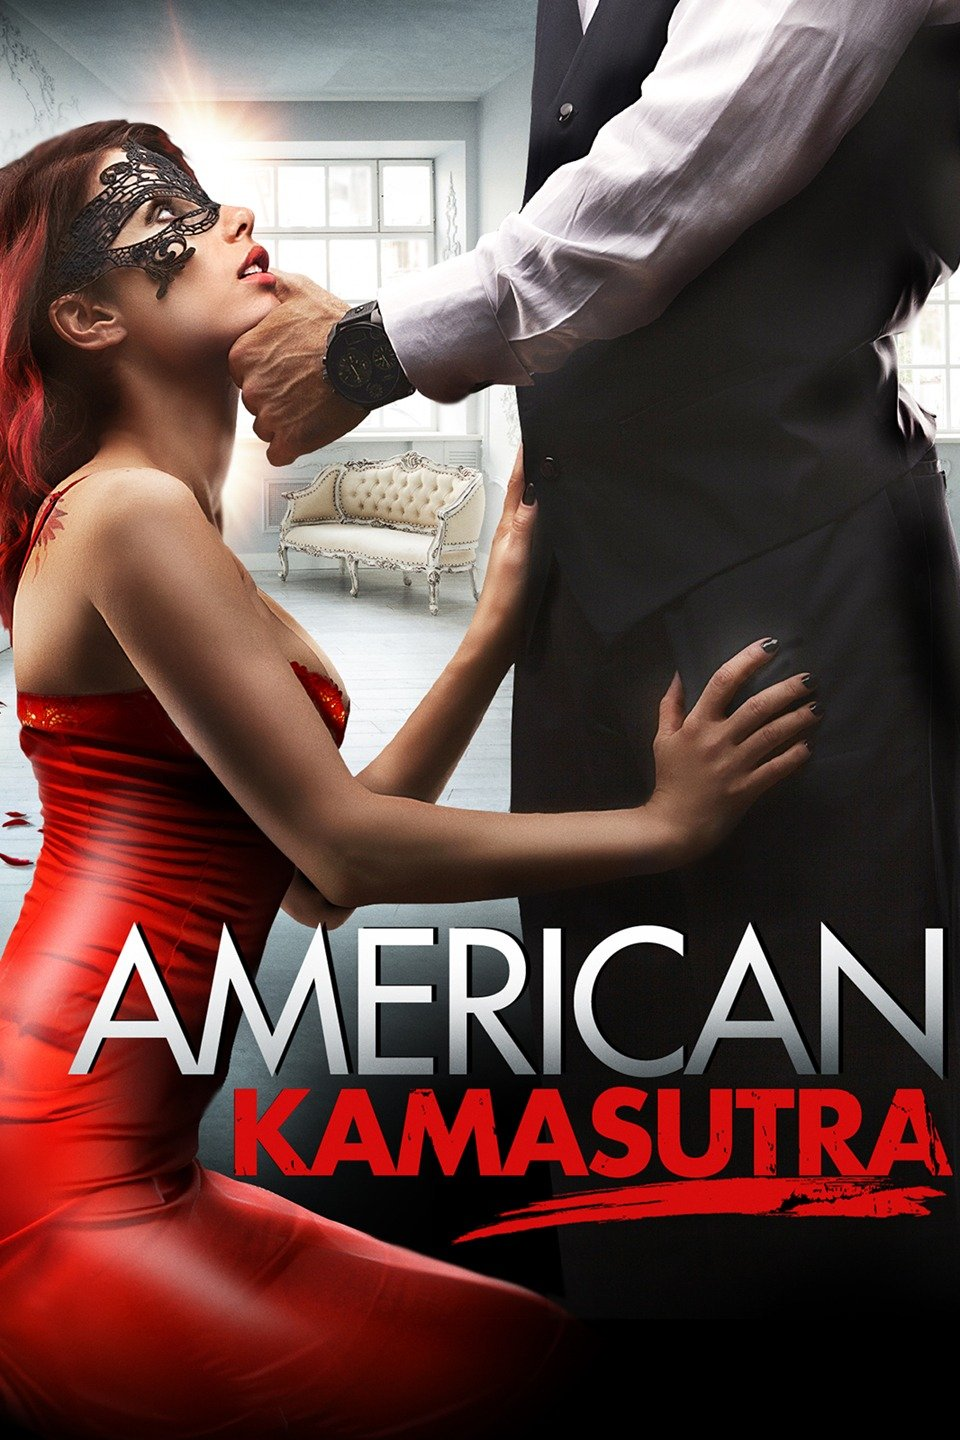 Download [18+] American Kamasutra 2018 [Hindi Dubbed (Unofficial) + English] 480p [300MB] | 720p WEB-DL